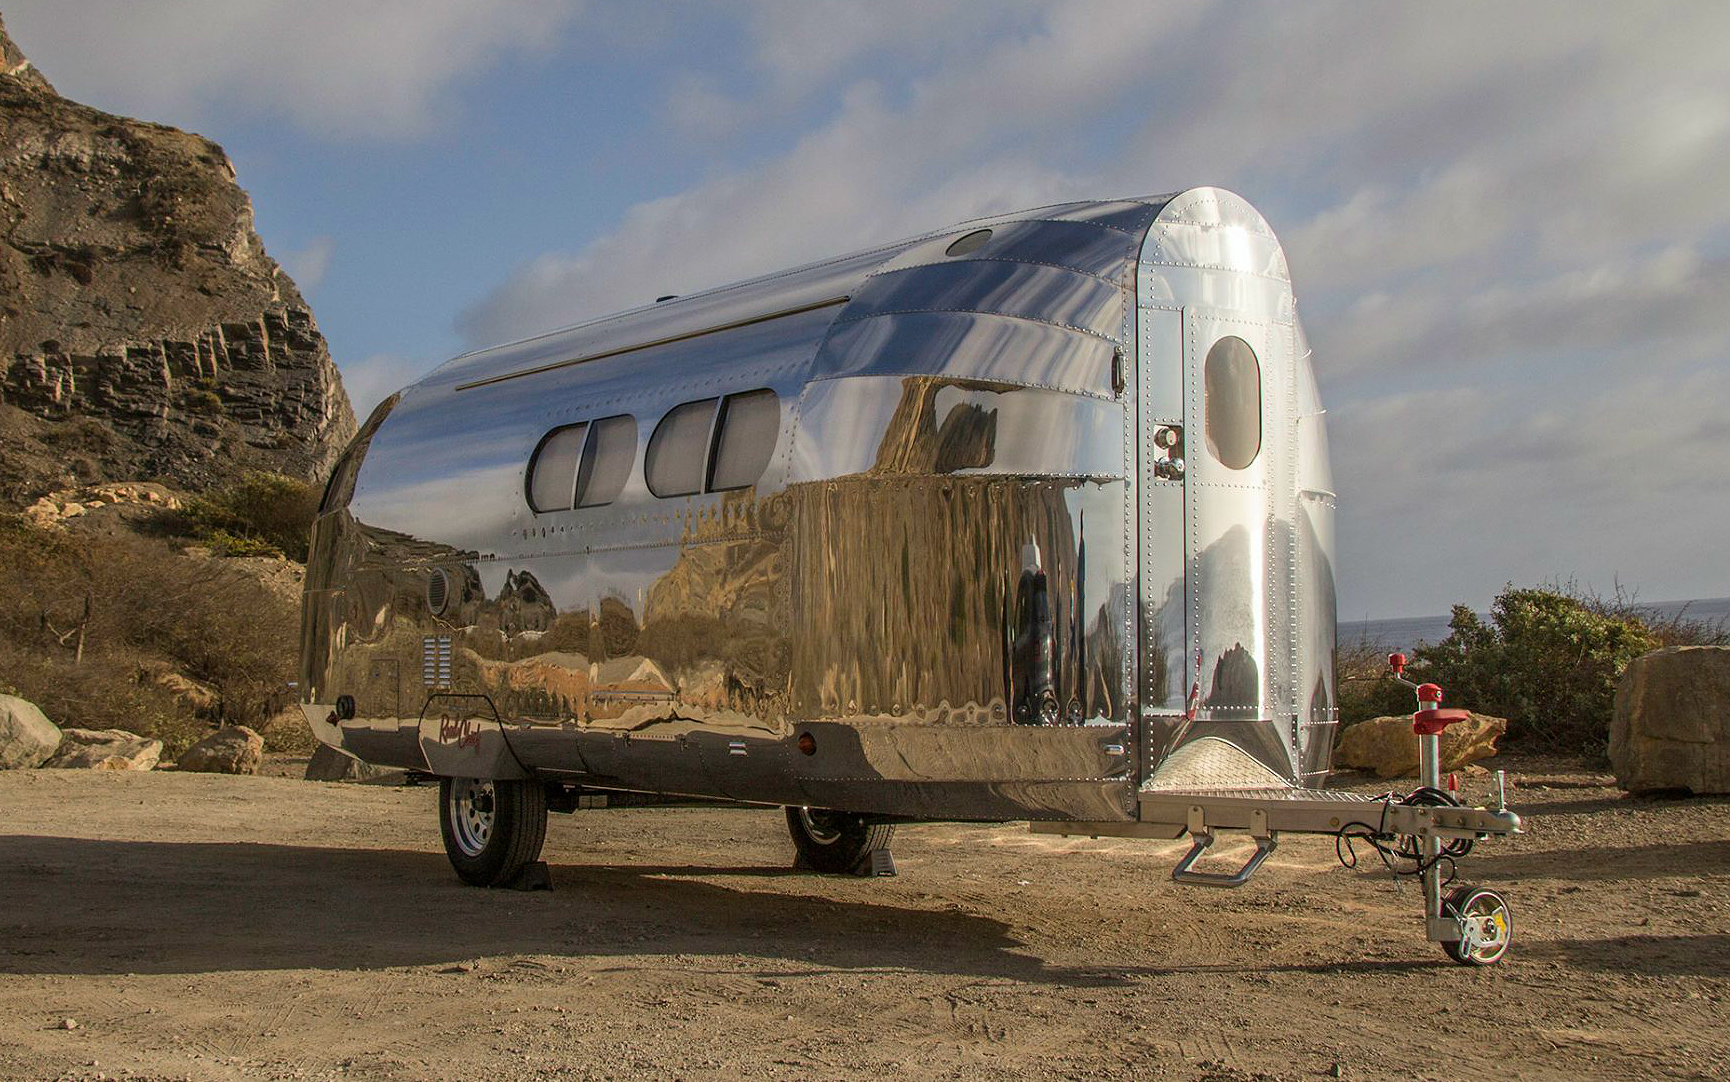 Bowlus Road Chief Endless Highways Travel Trailer